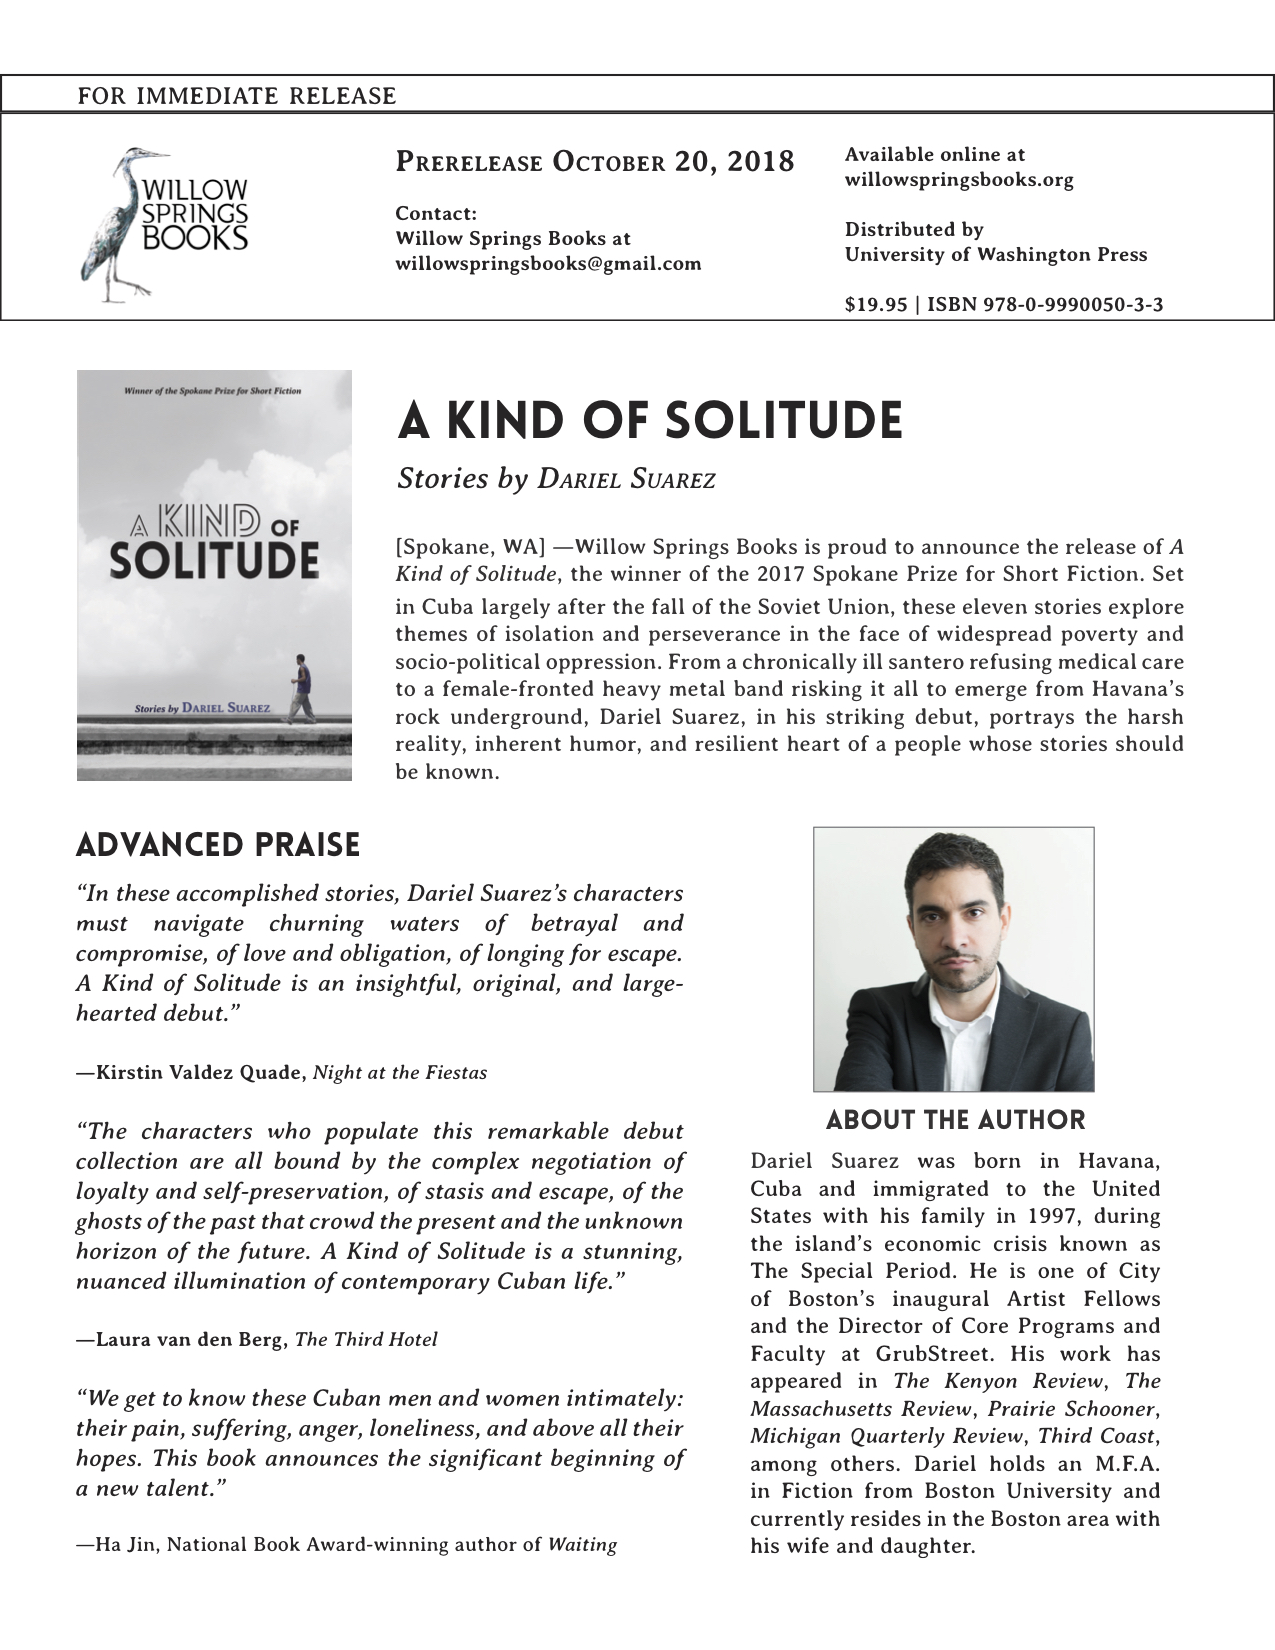 A Kind of Solitude Press Release Final